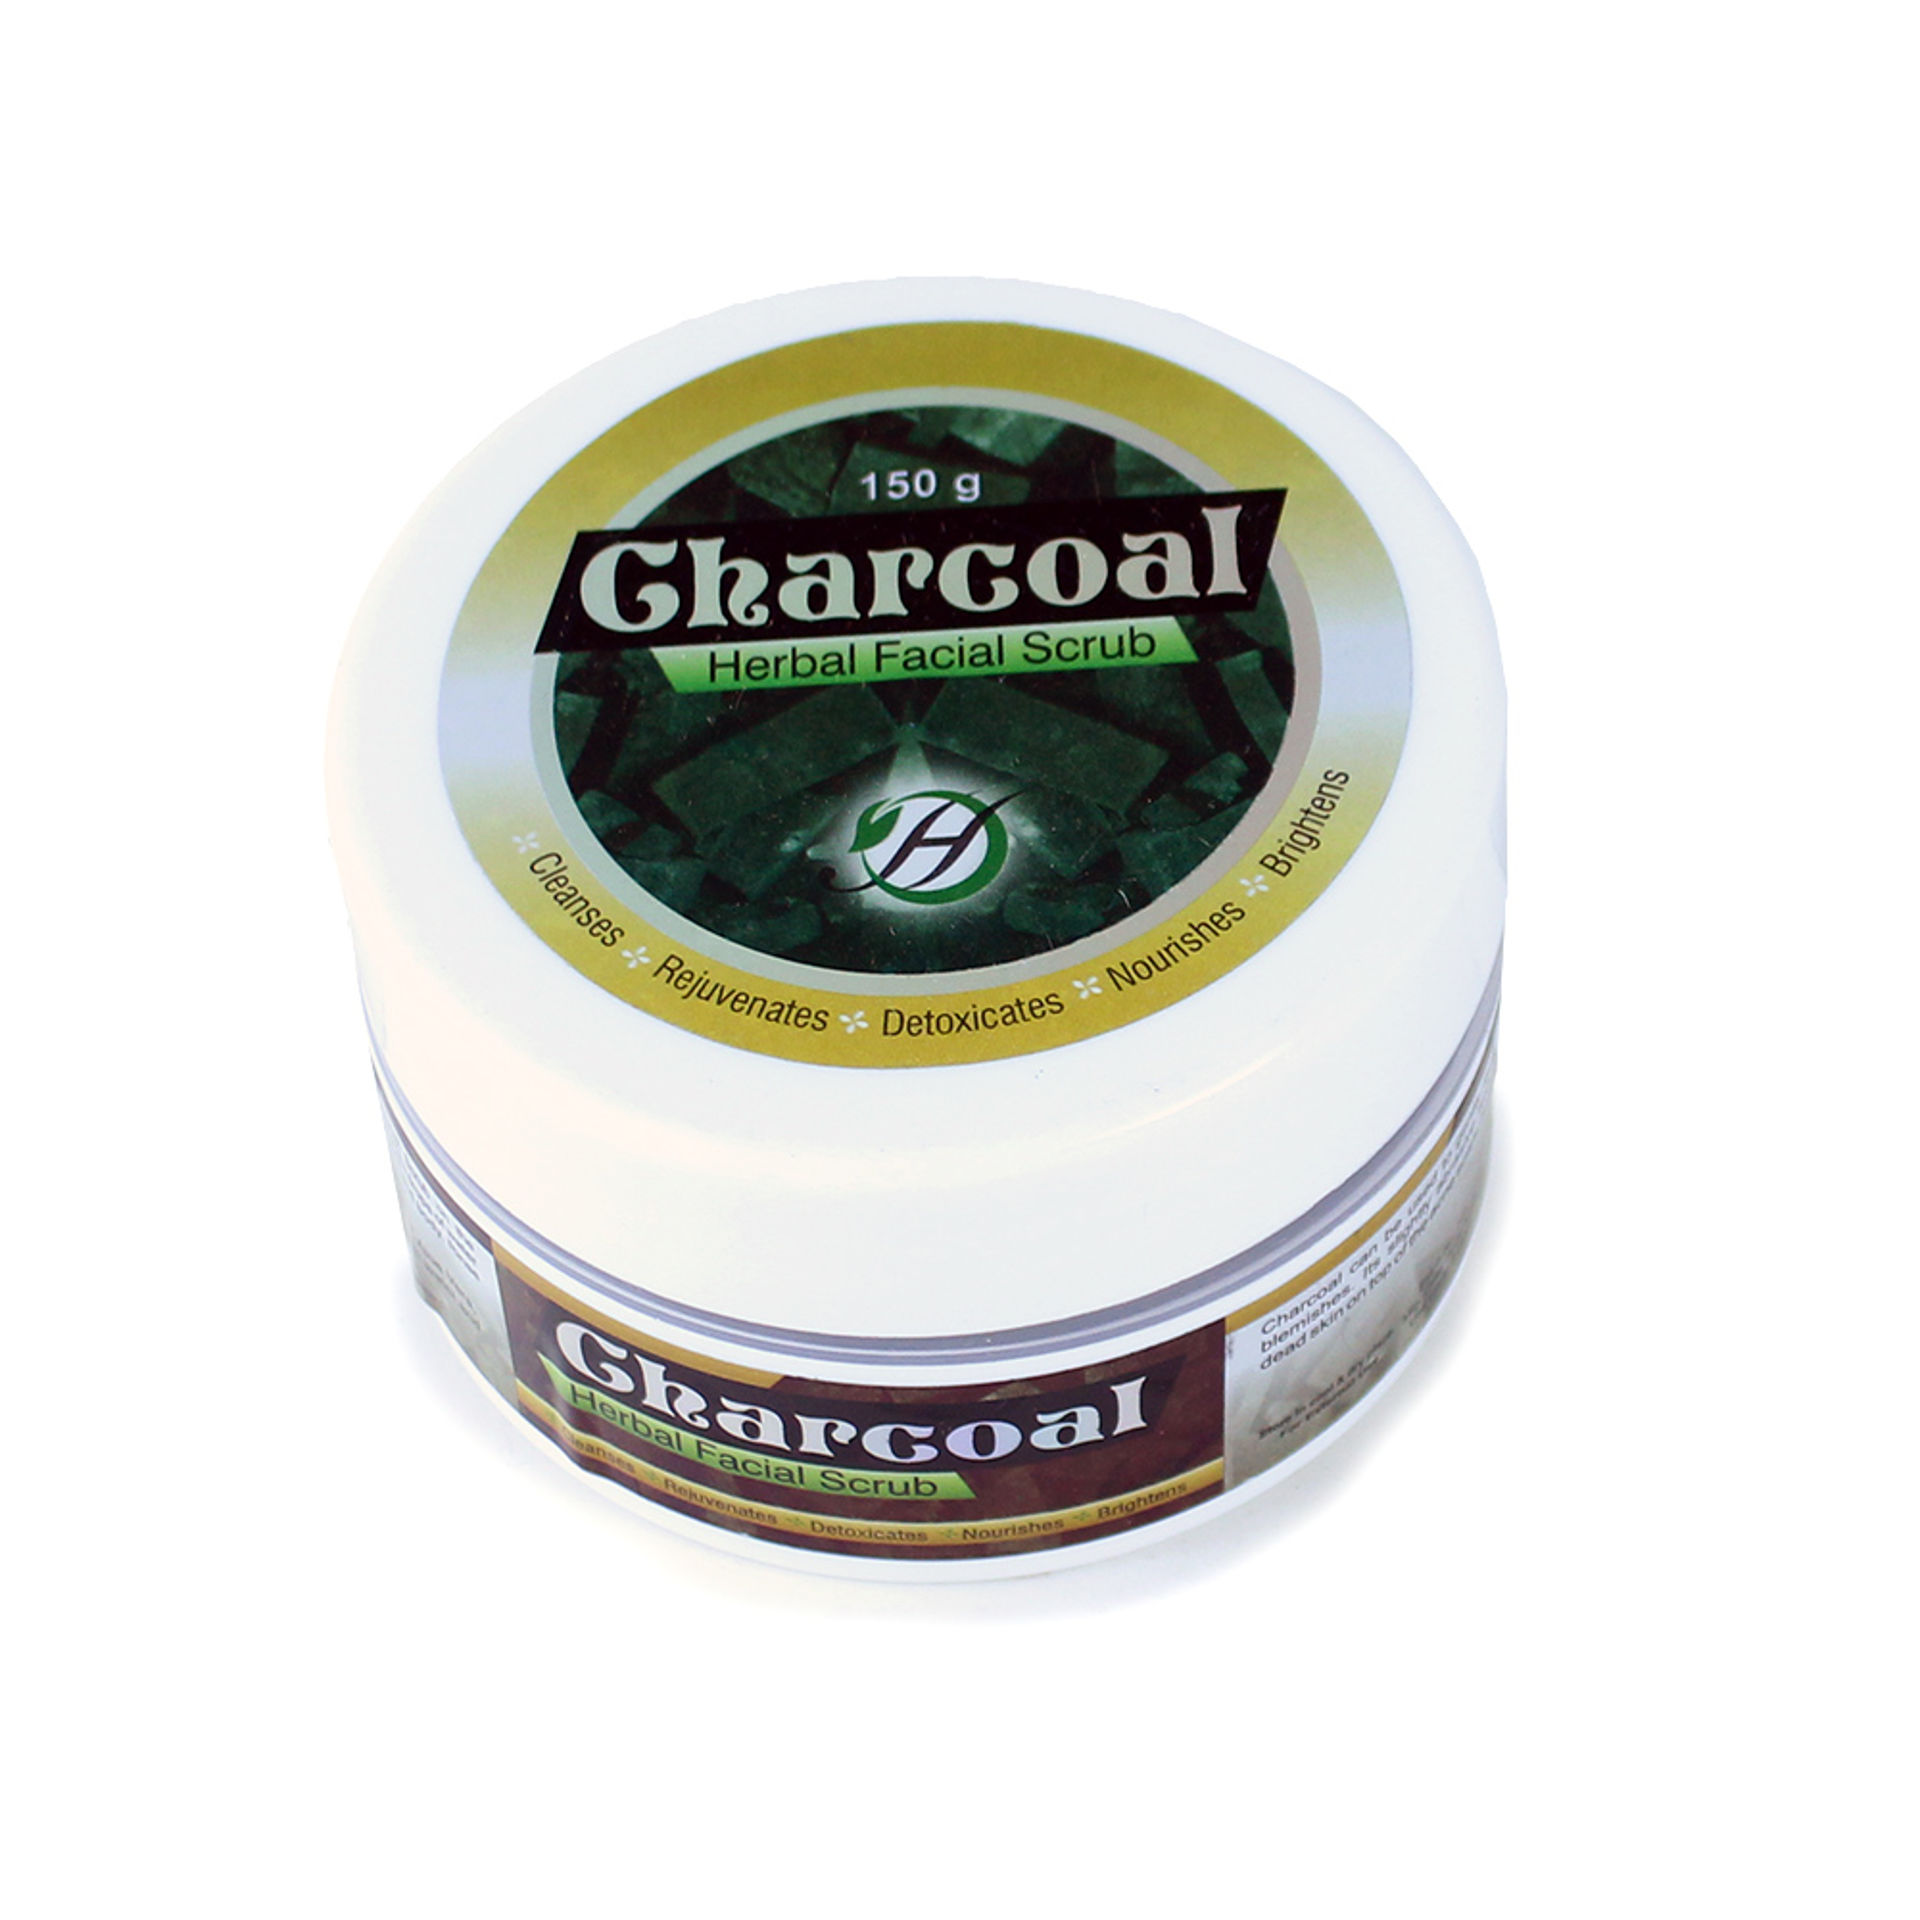 Picture of Charcoal Herbal Face Scrub - 150 g